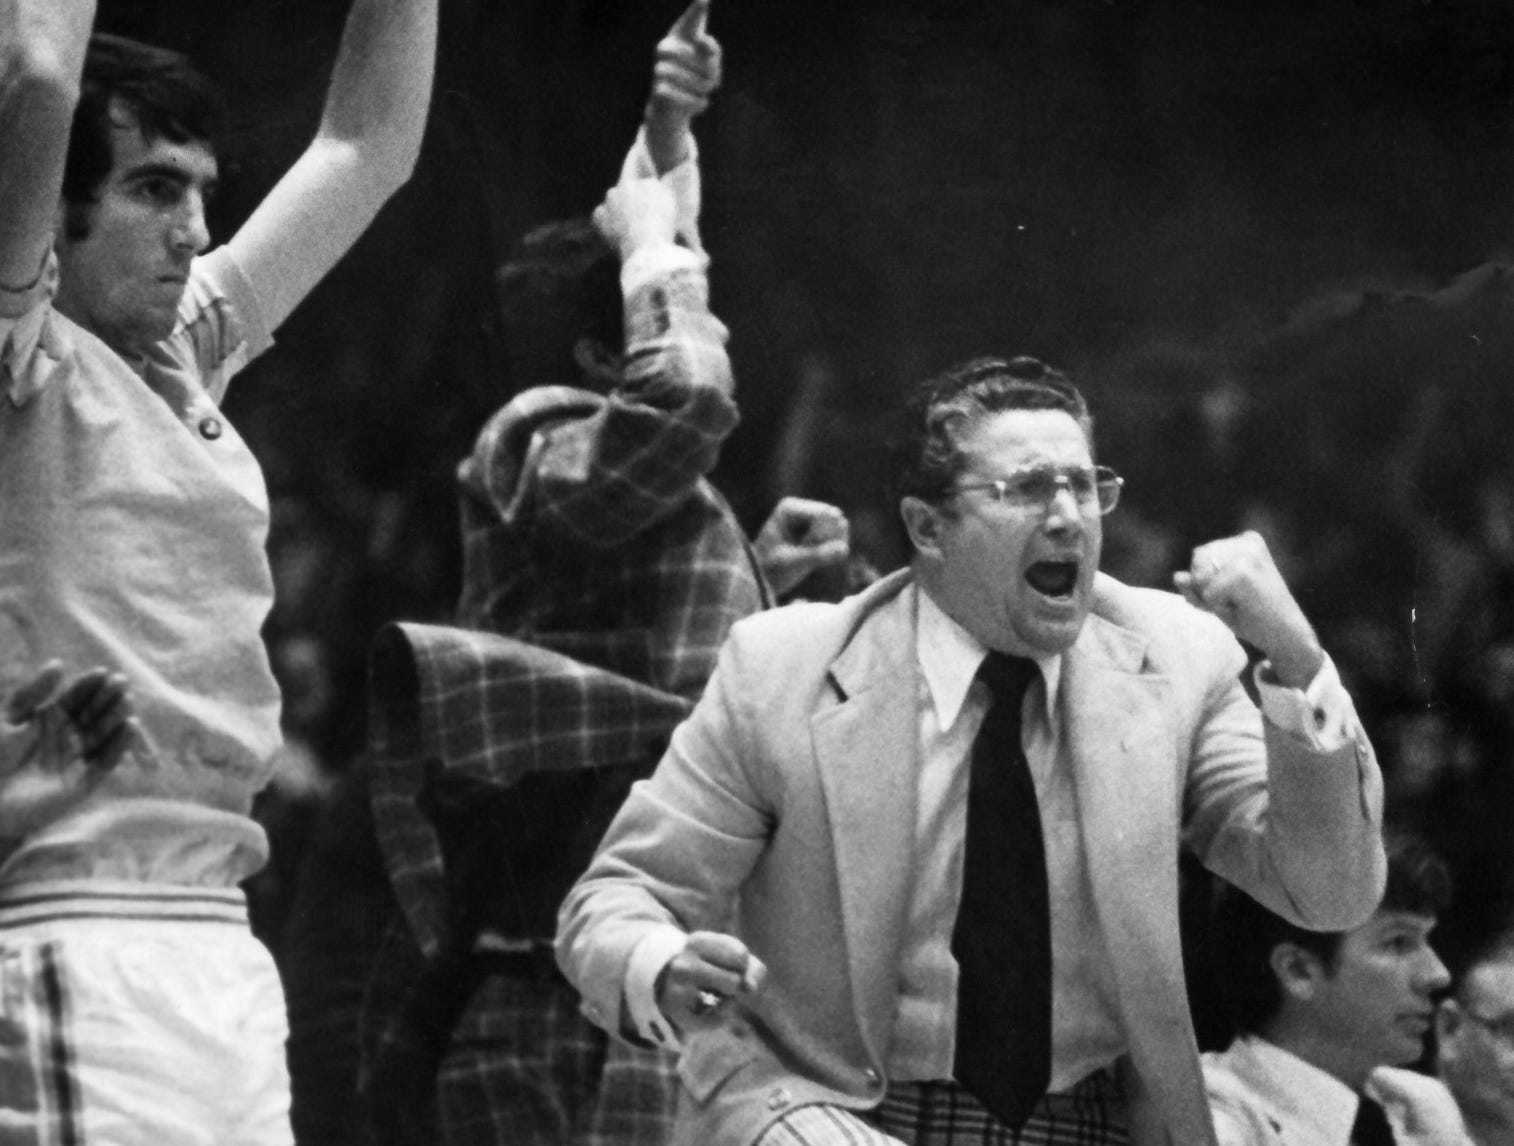 University of Tennessee basketball Coach Ray Mears gets excited during a game in 1974 at Stokely Athletic Center.